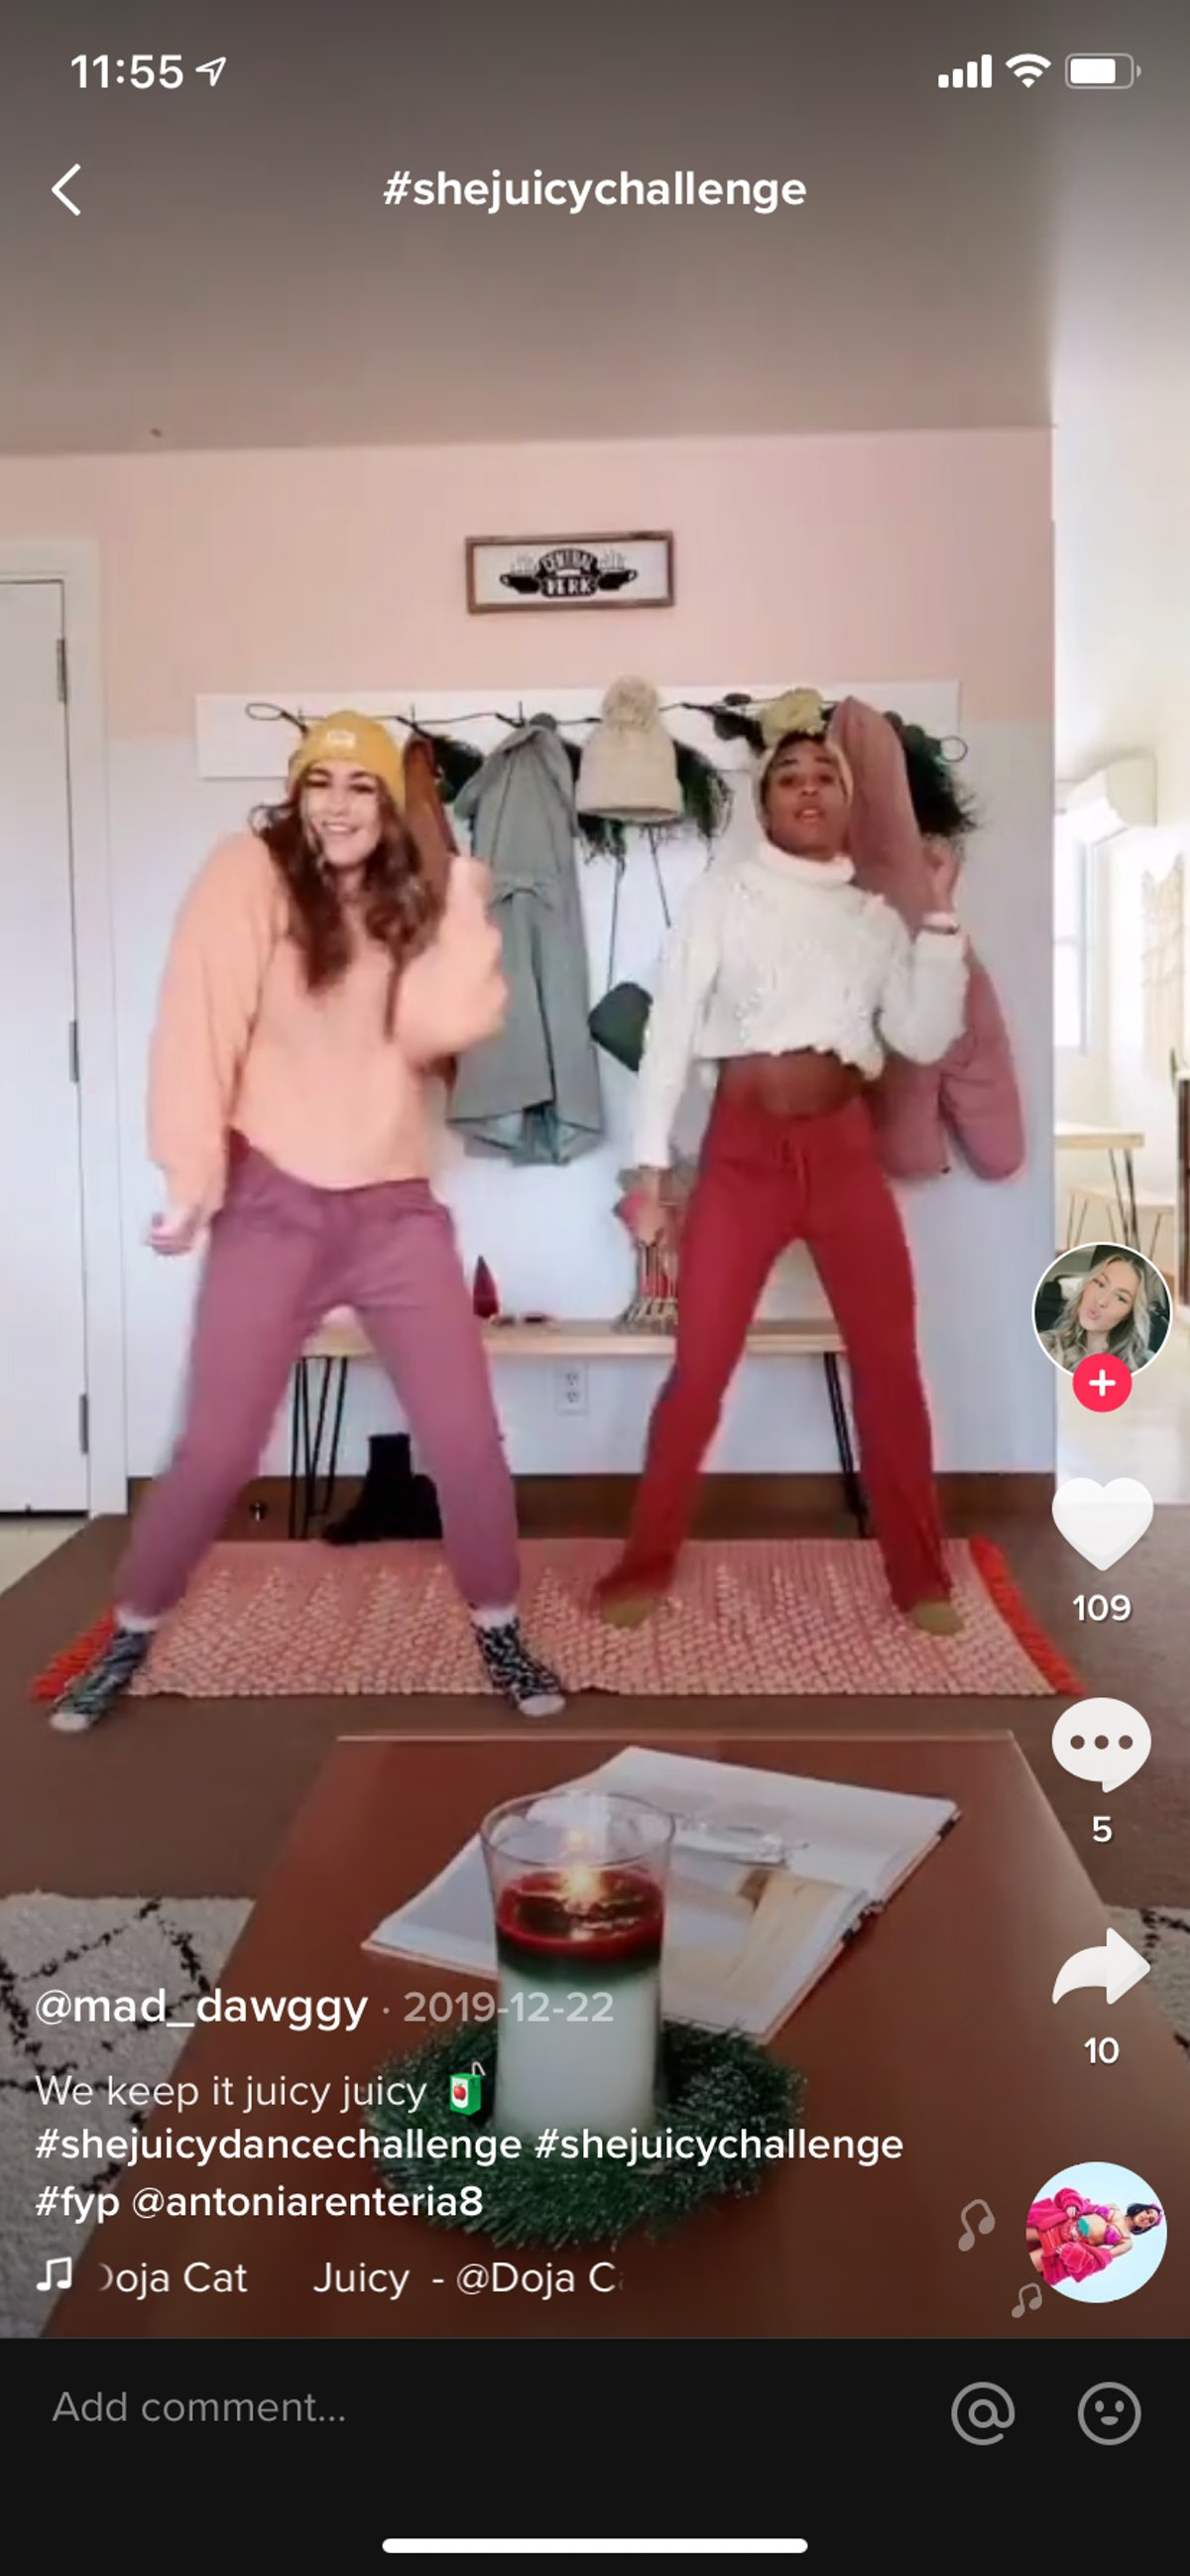 Two best friends do the #shejuicychallenge on TikTok in a colorful room.